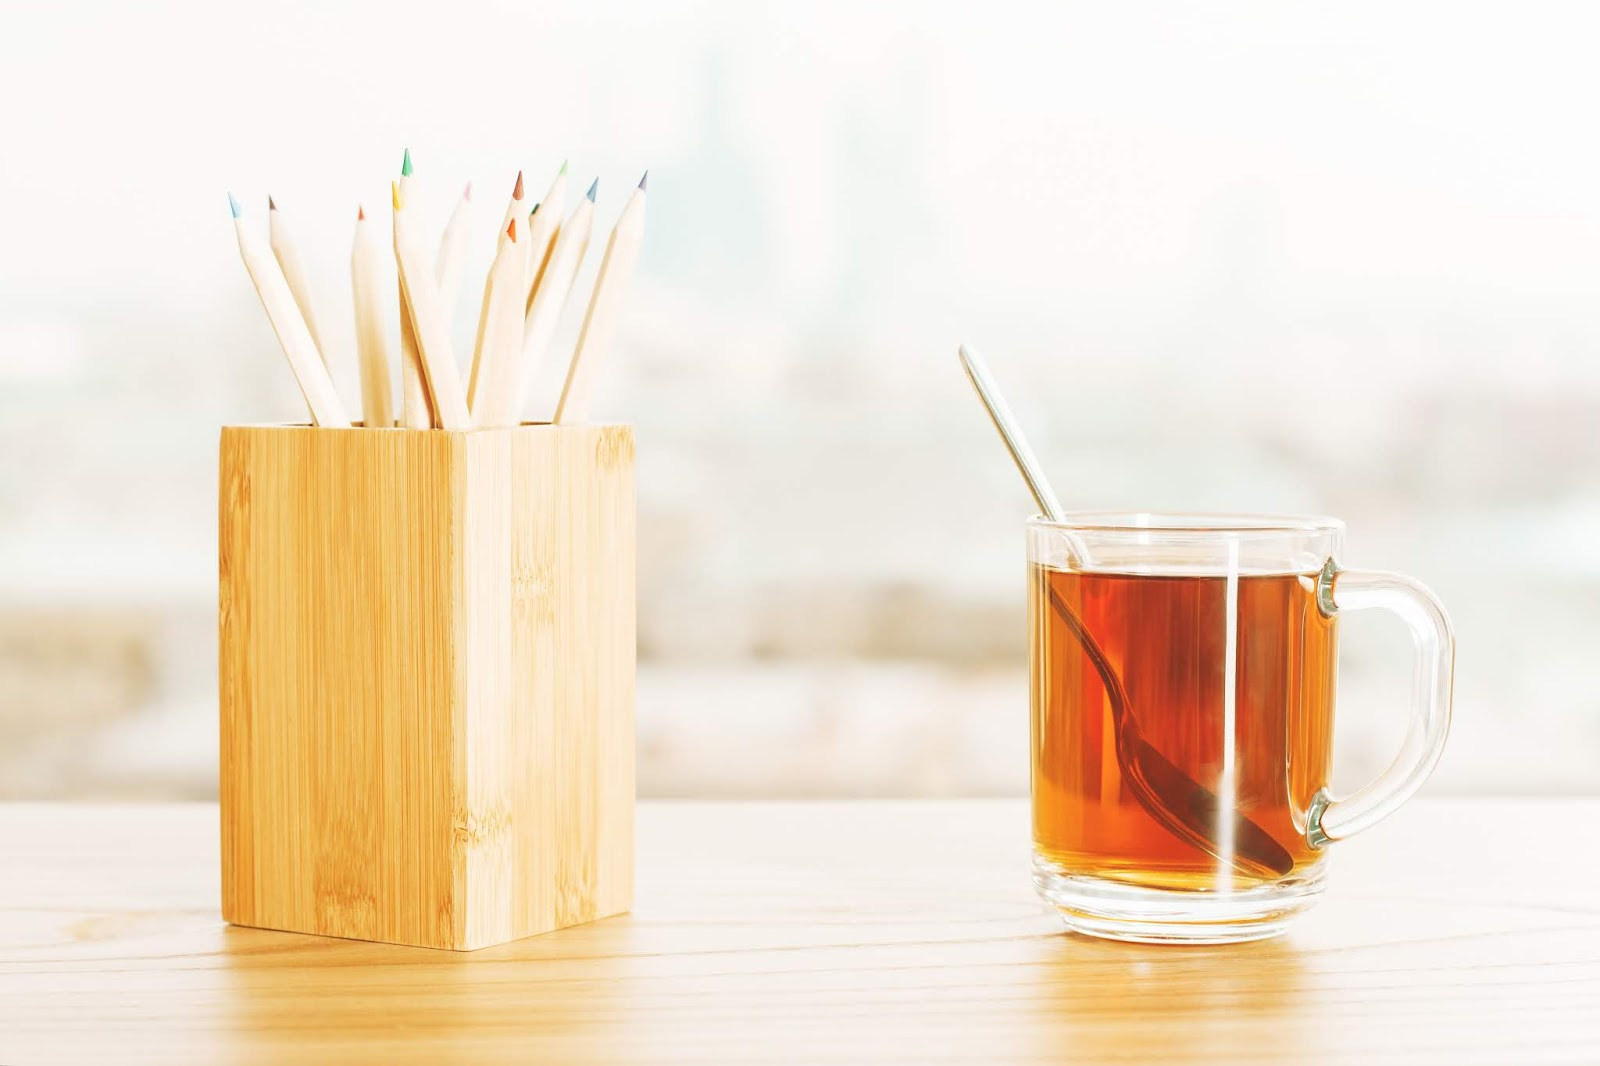 DIY Wood Pencil Holder